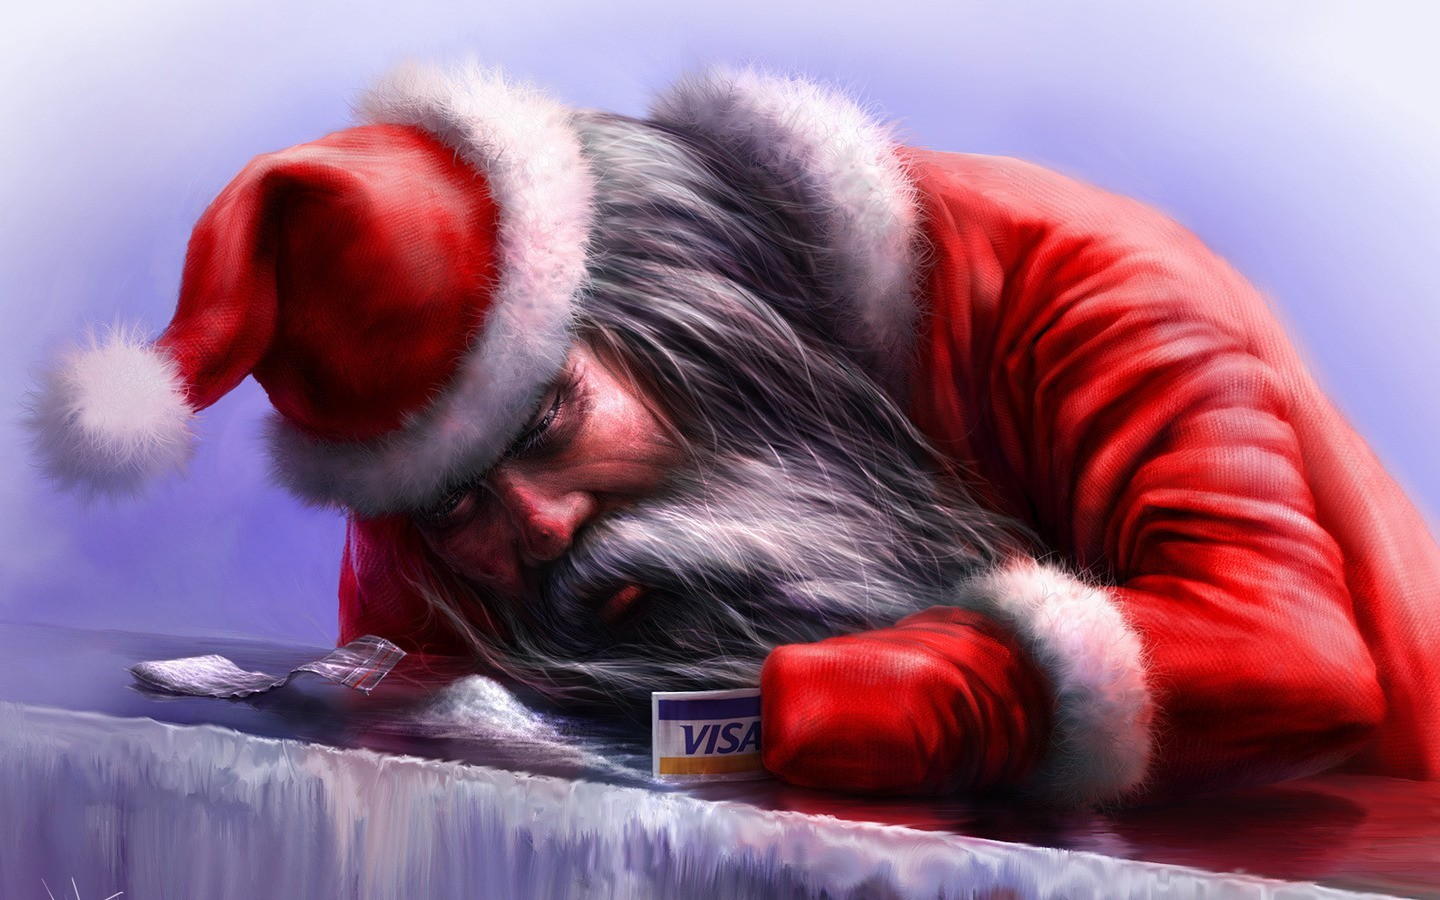 santa claus artwork HD Wallpaper